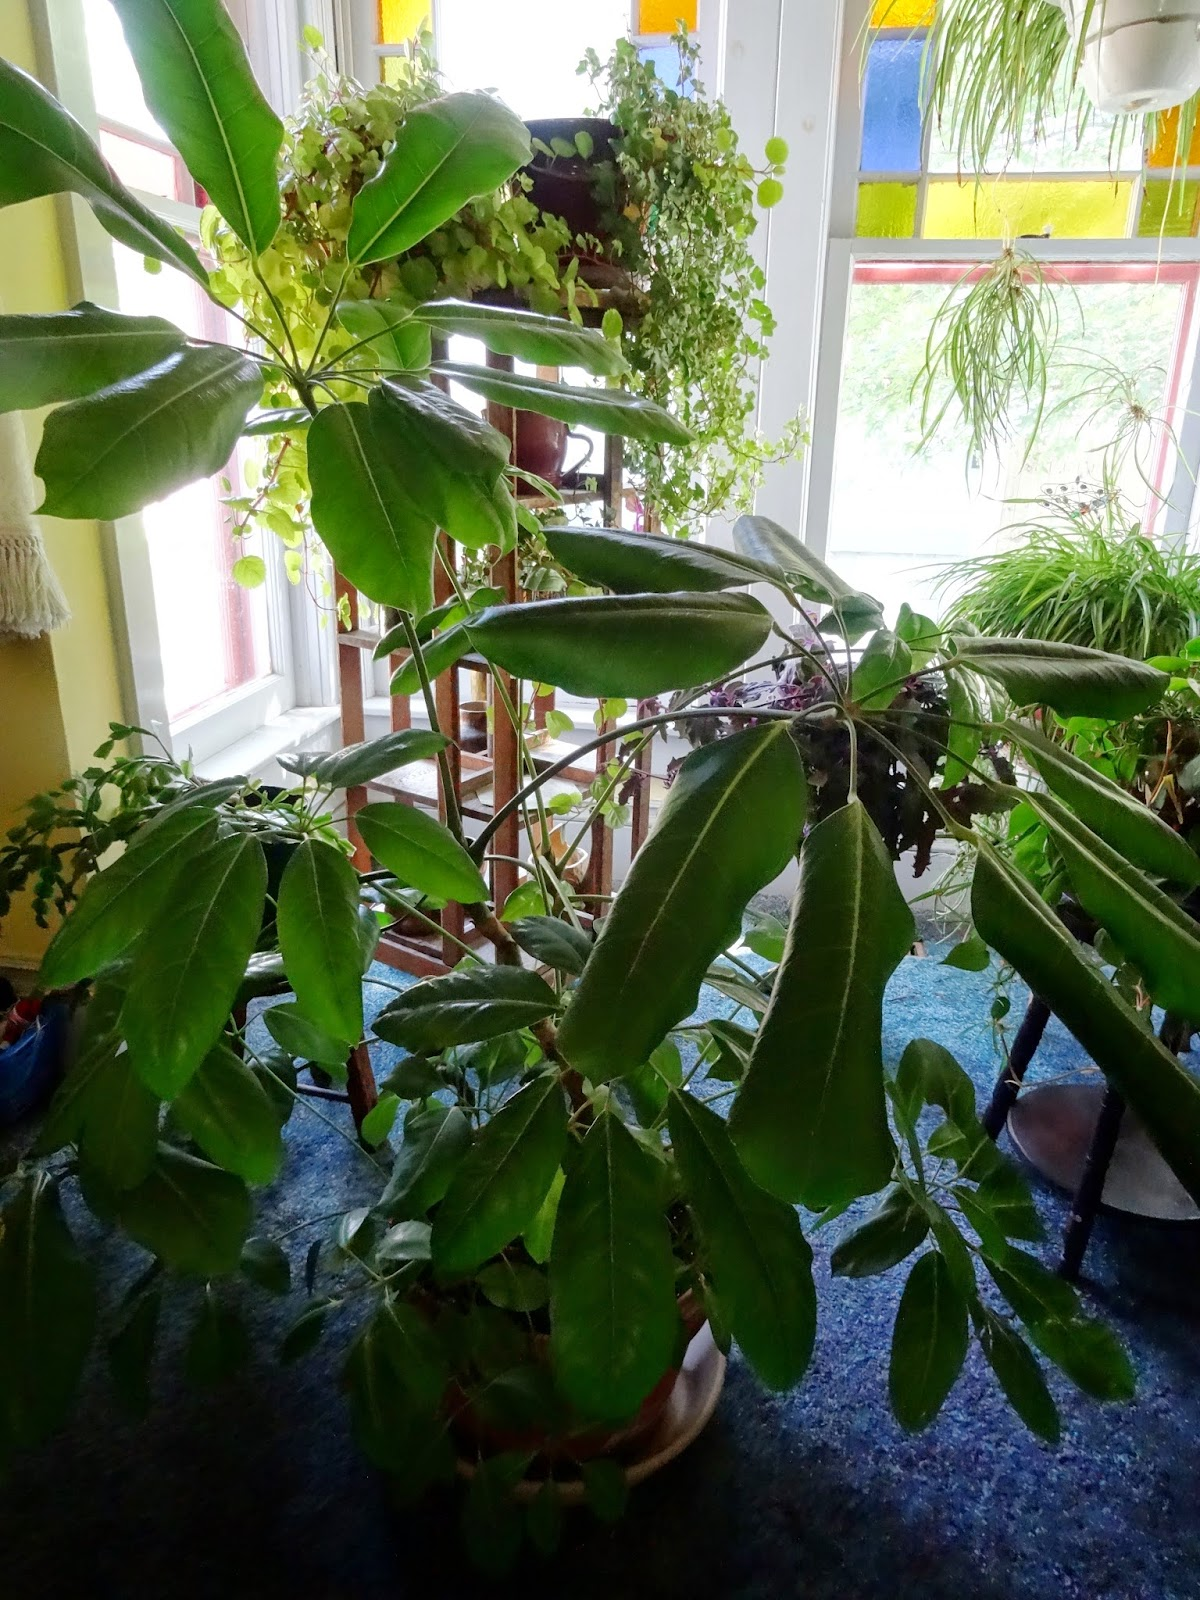 There 39 s a dragon in my art room the house plant problem - Plants for every room in your home extra comfort and health ...